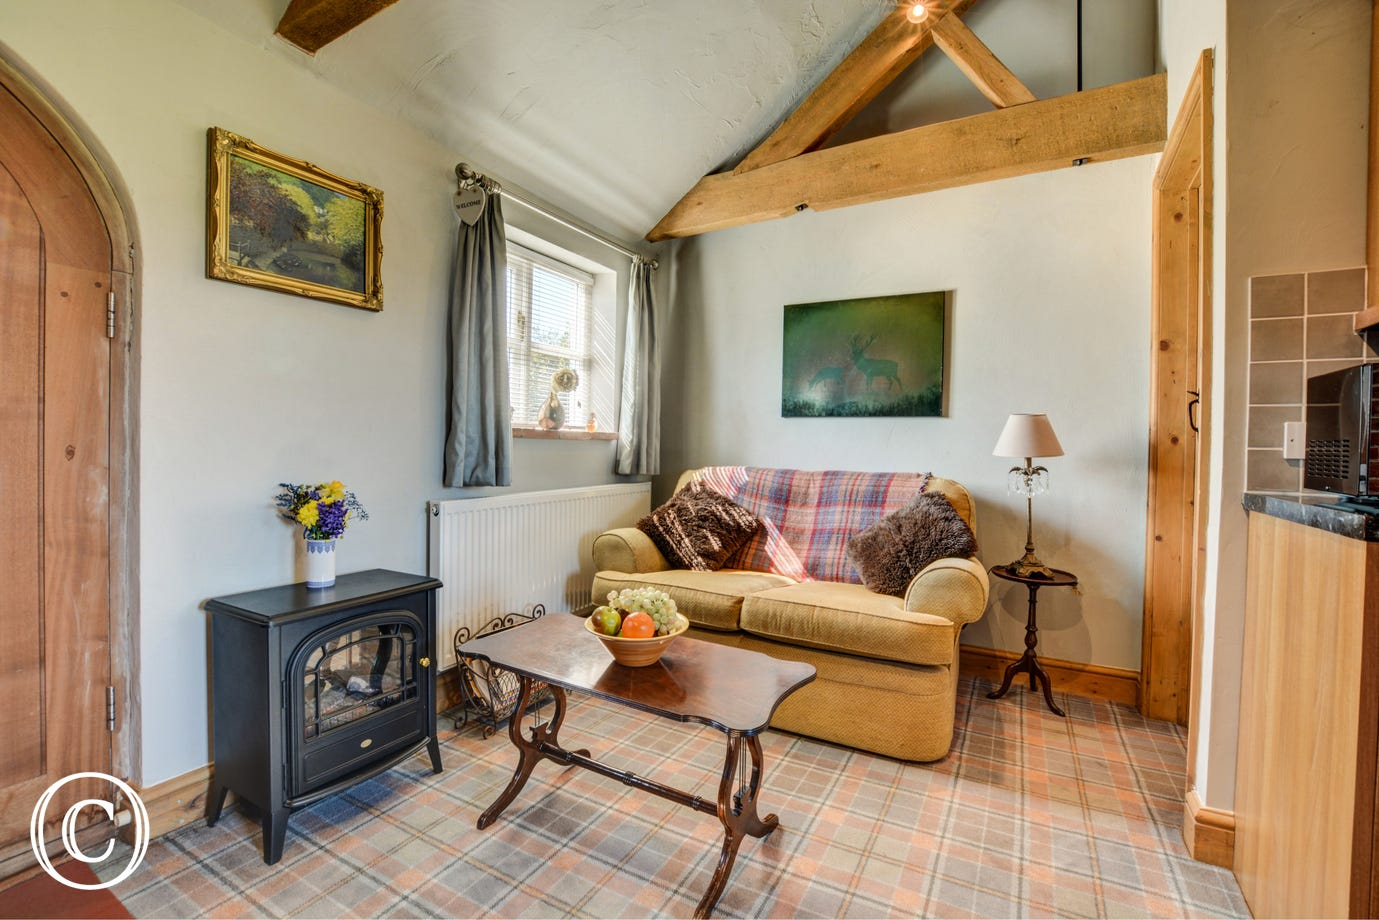 The sitting area has comfortable seating and an electric effect woodburner for cosy evenings